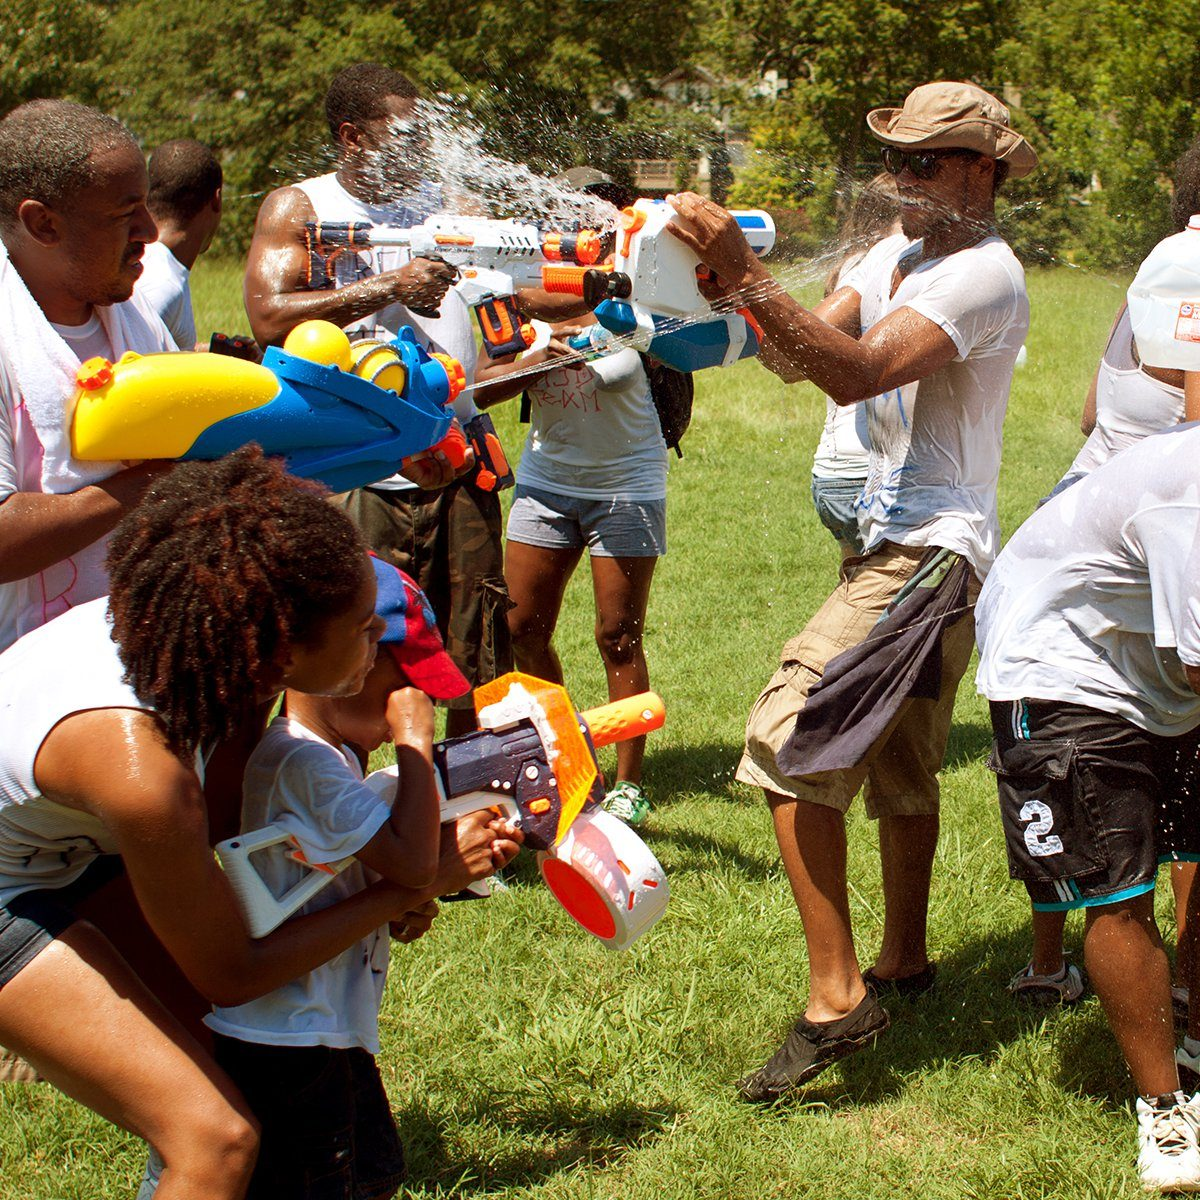 Unidentified people take part in a water gun battle called the Fight4Atlanta, a squirt gun fight between dozens of locals at Freedom Park on July 28, 2012 in Atlanta.